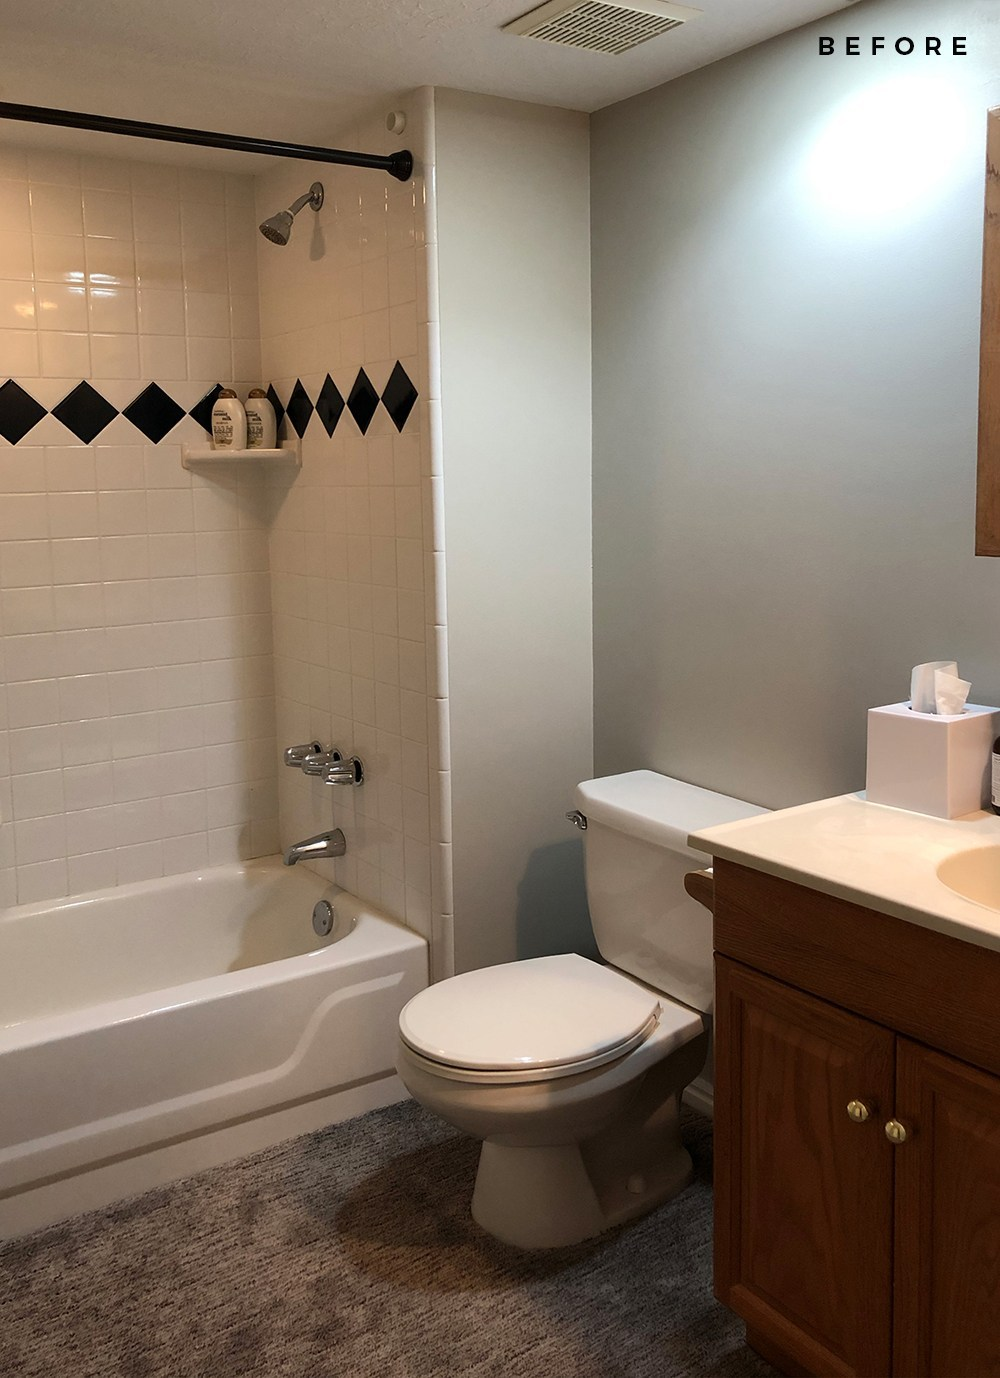 Basement Bathroom : Renovation Update - roomfortuesday.com